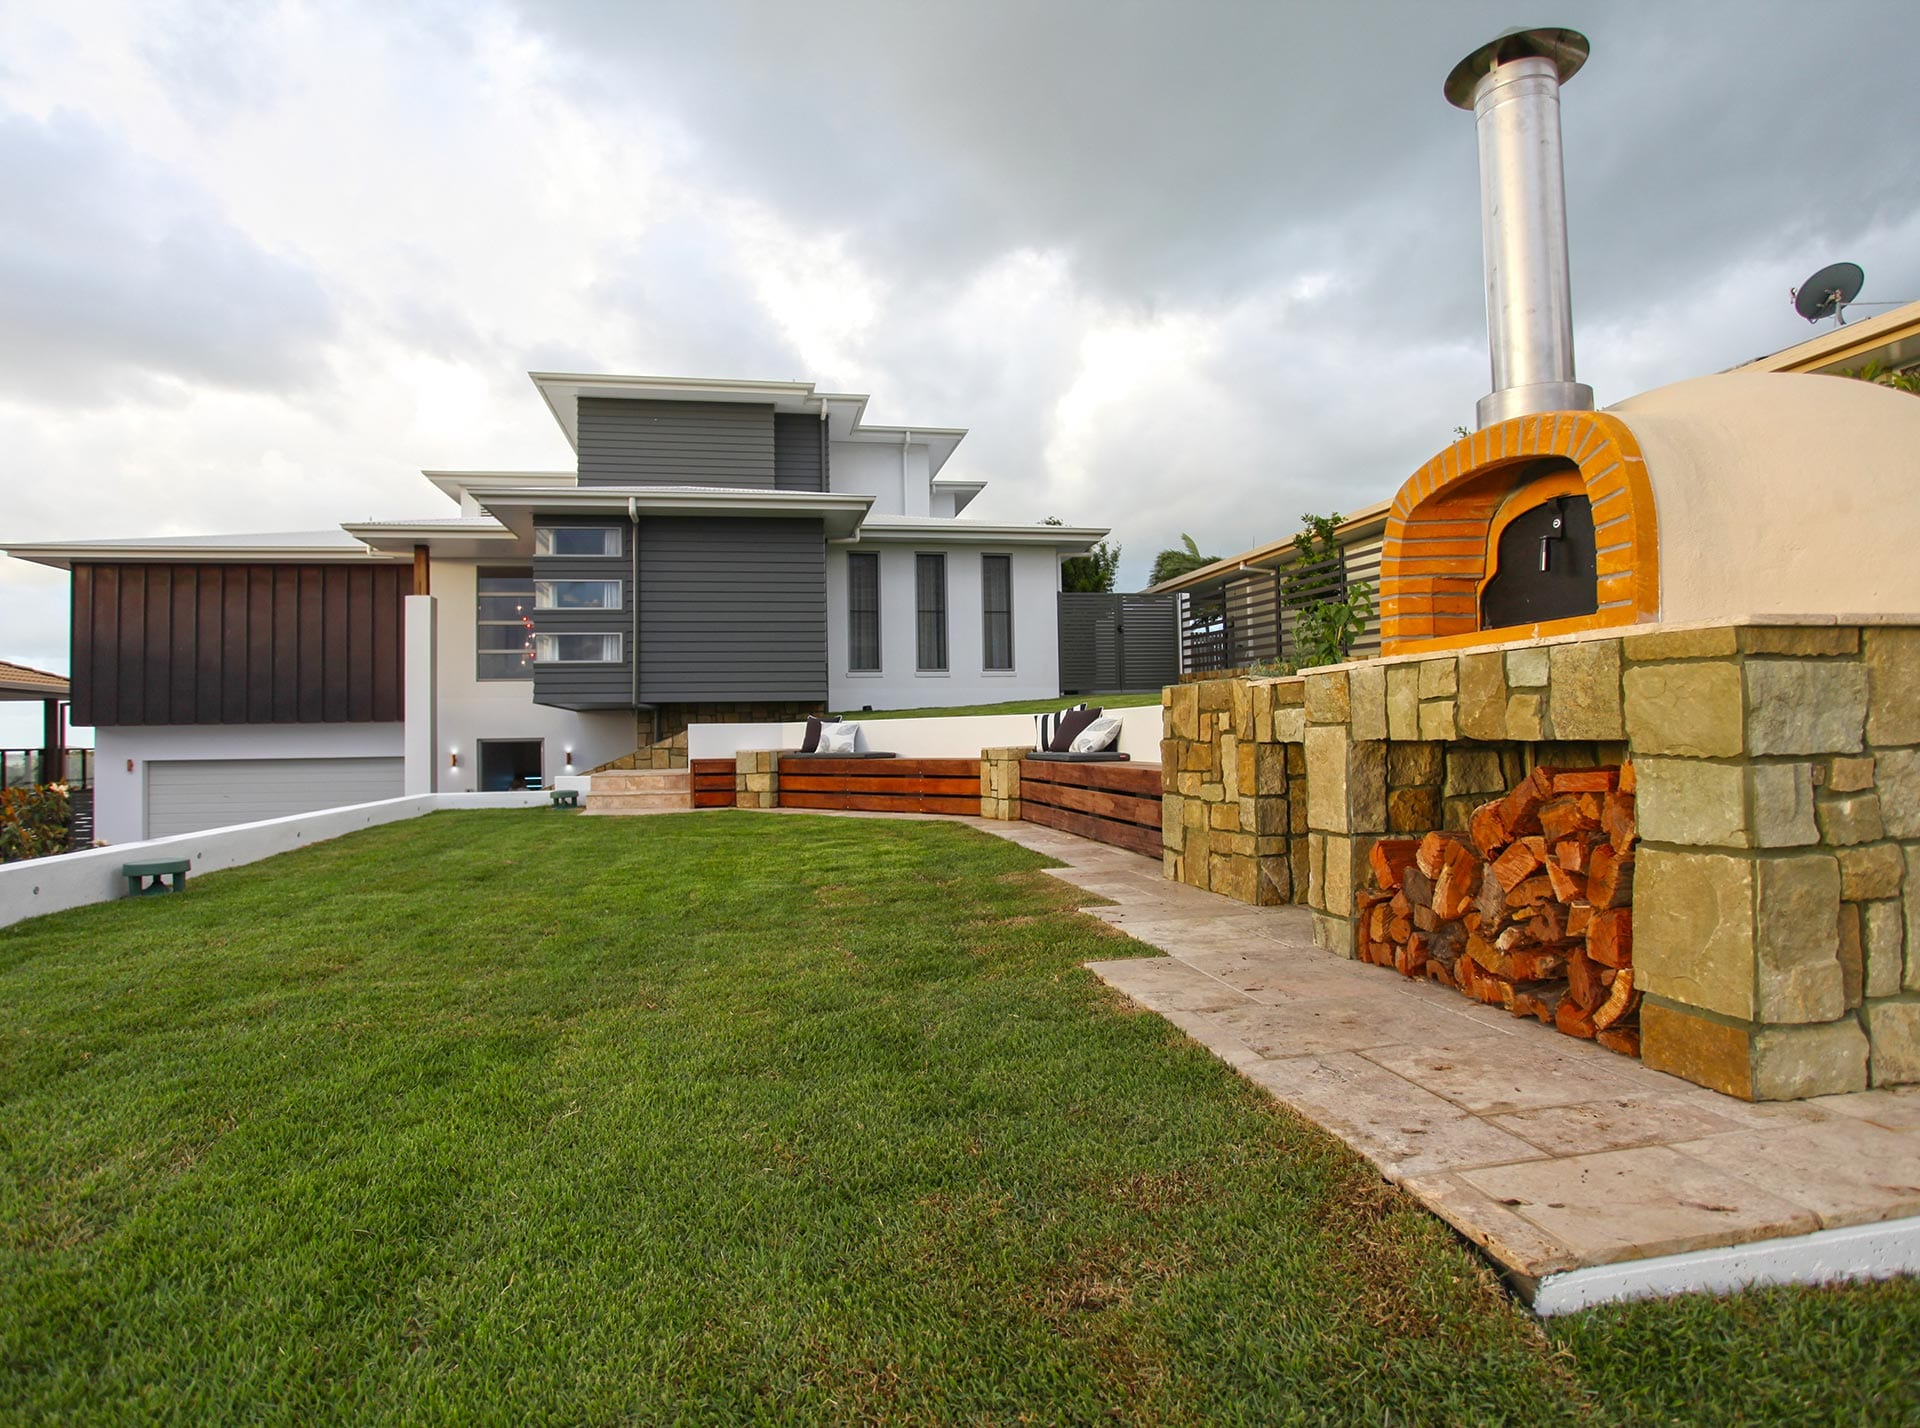 Coral Ridge Terrace with pizza oven